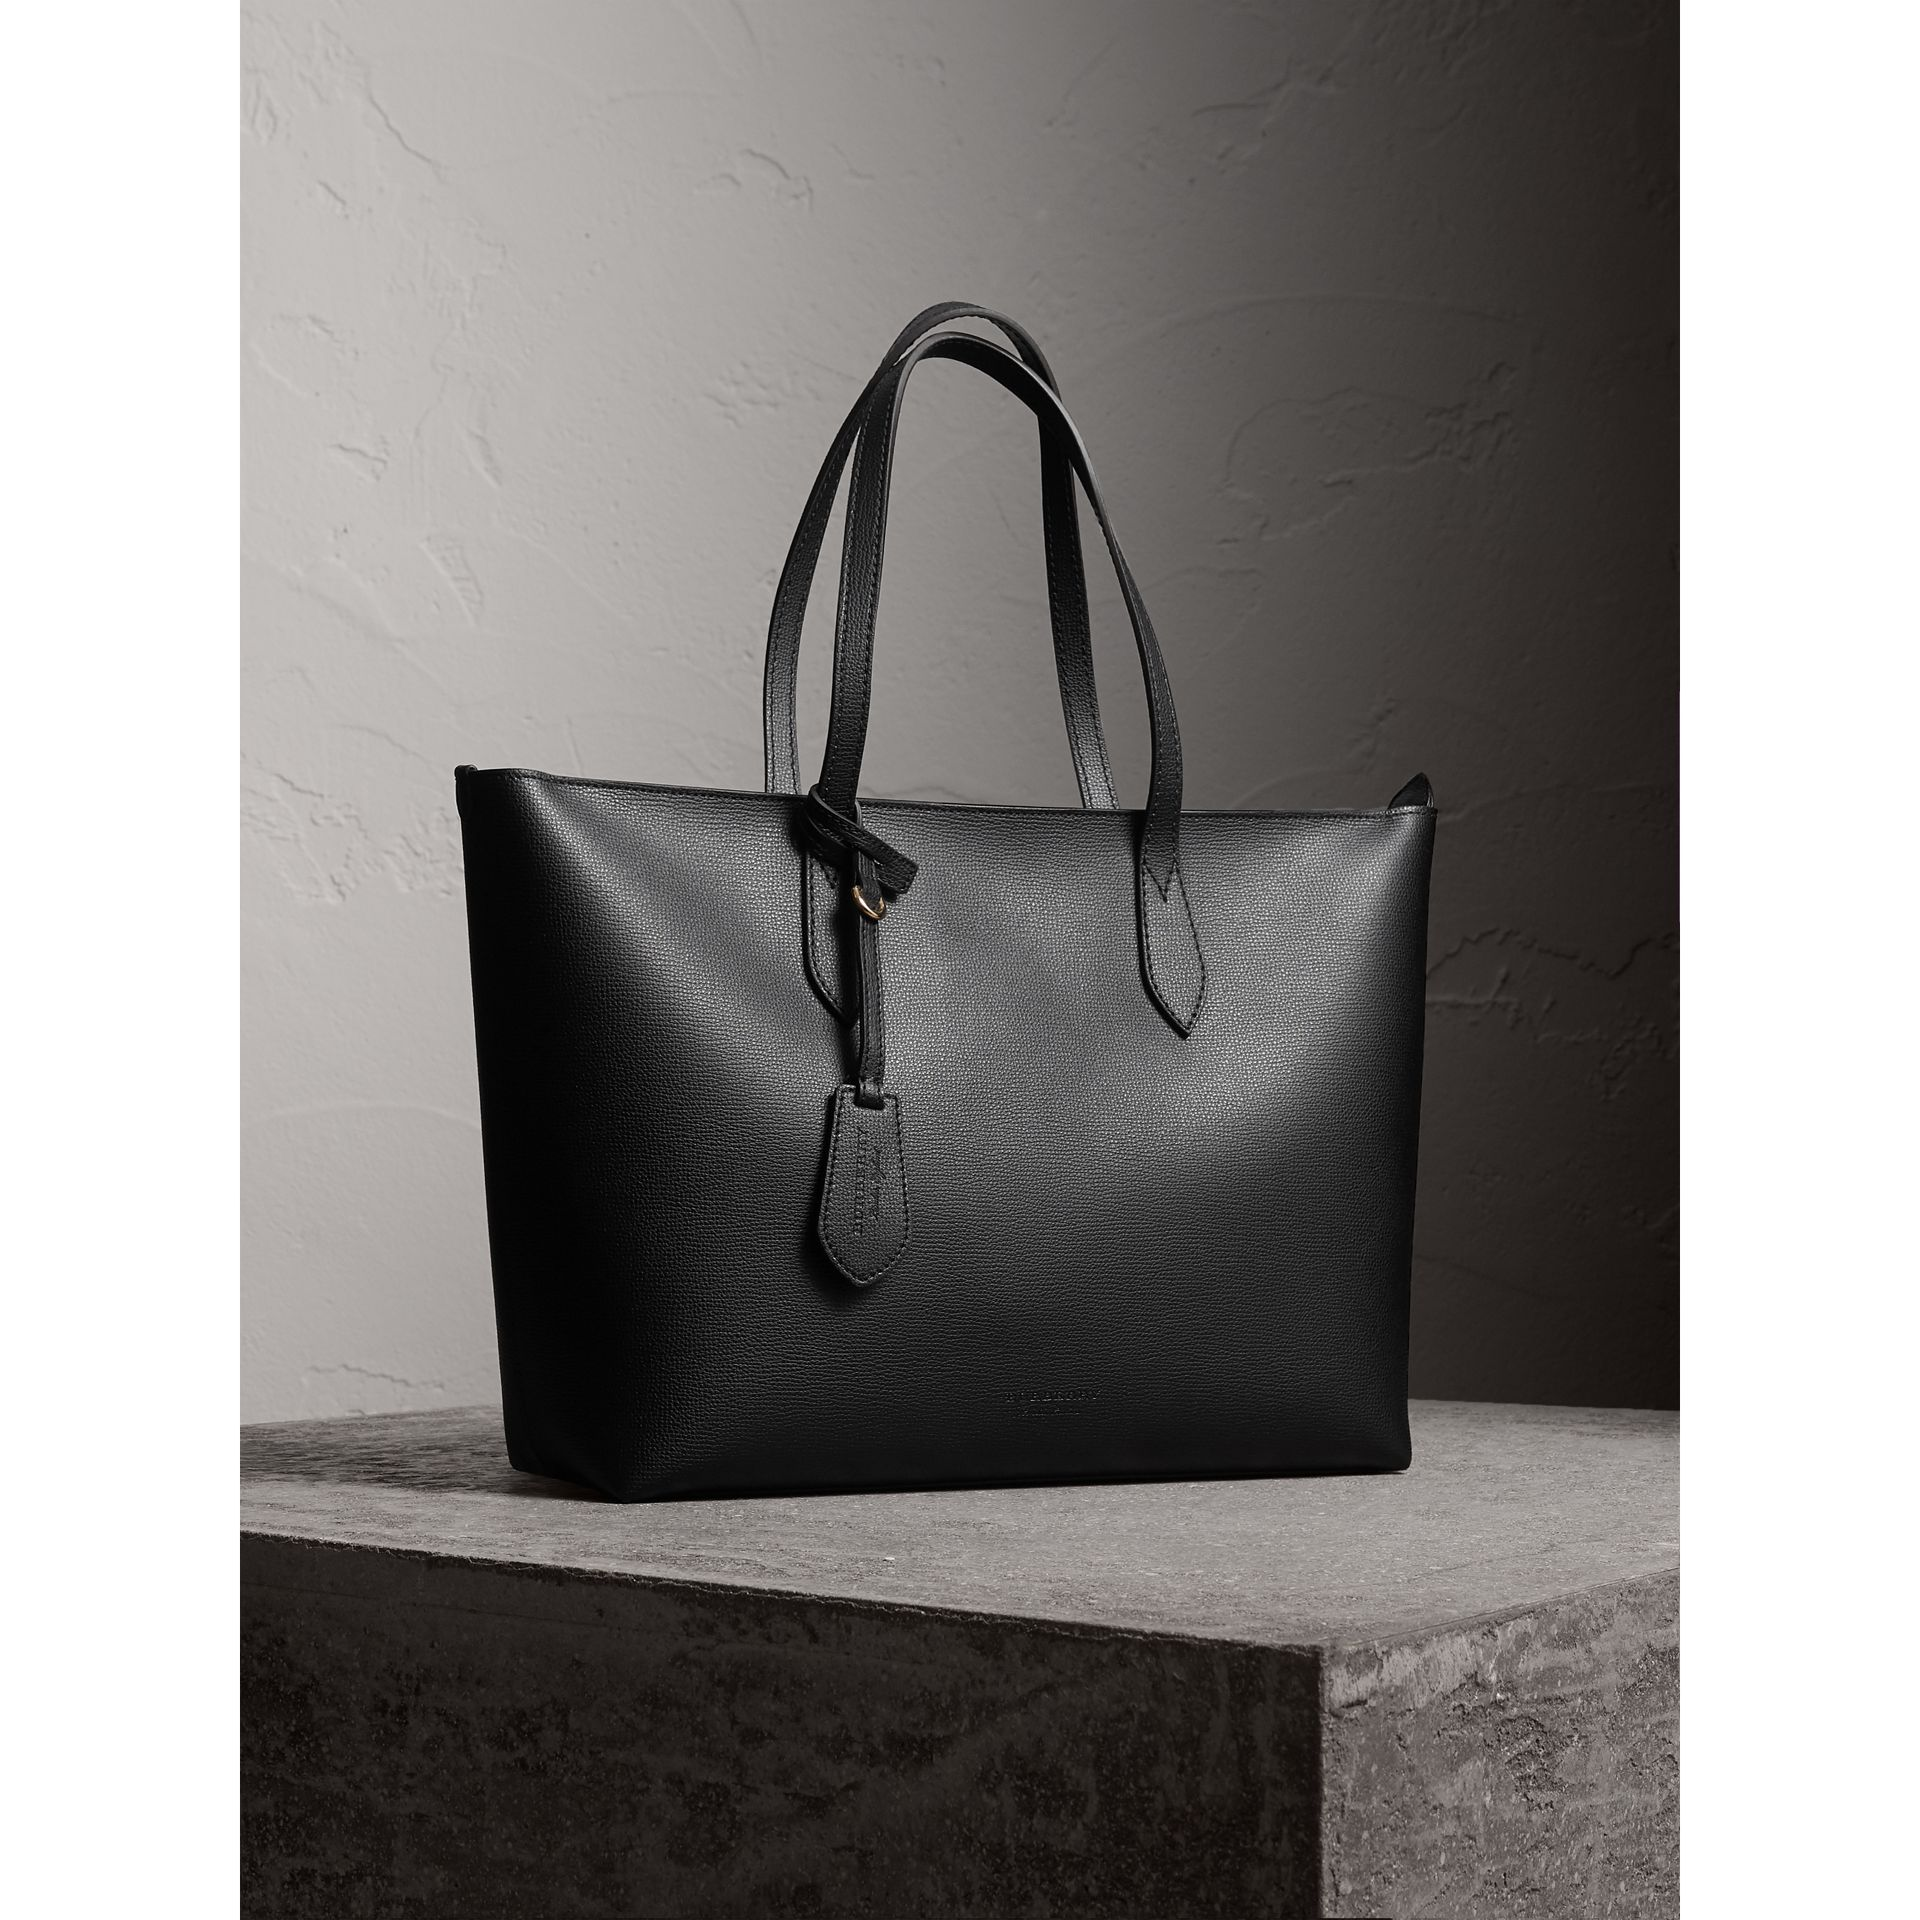 Medium Coated Leather Tote in Black - Women | Burberry - gallery image 6